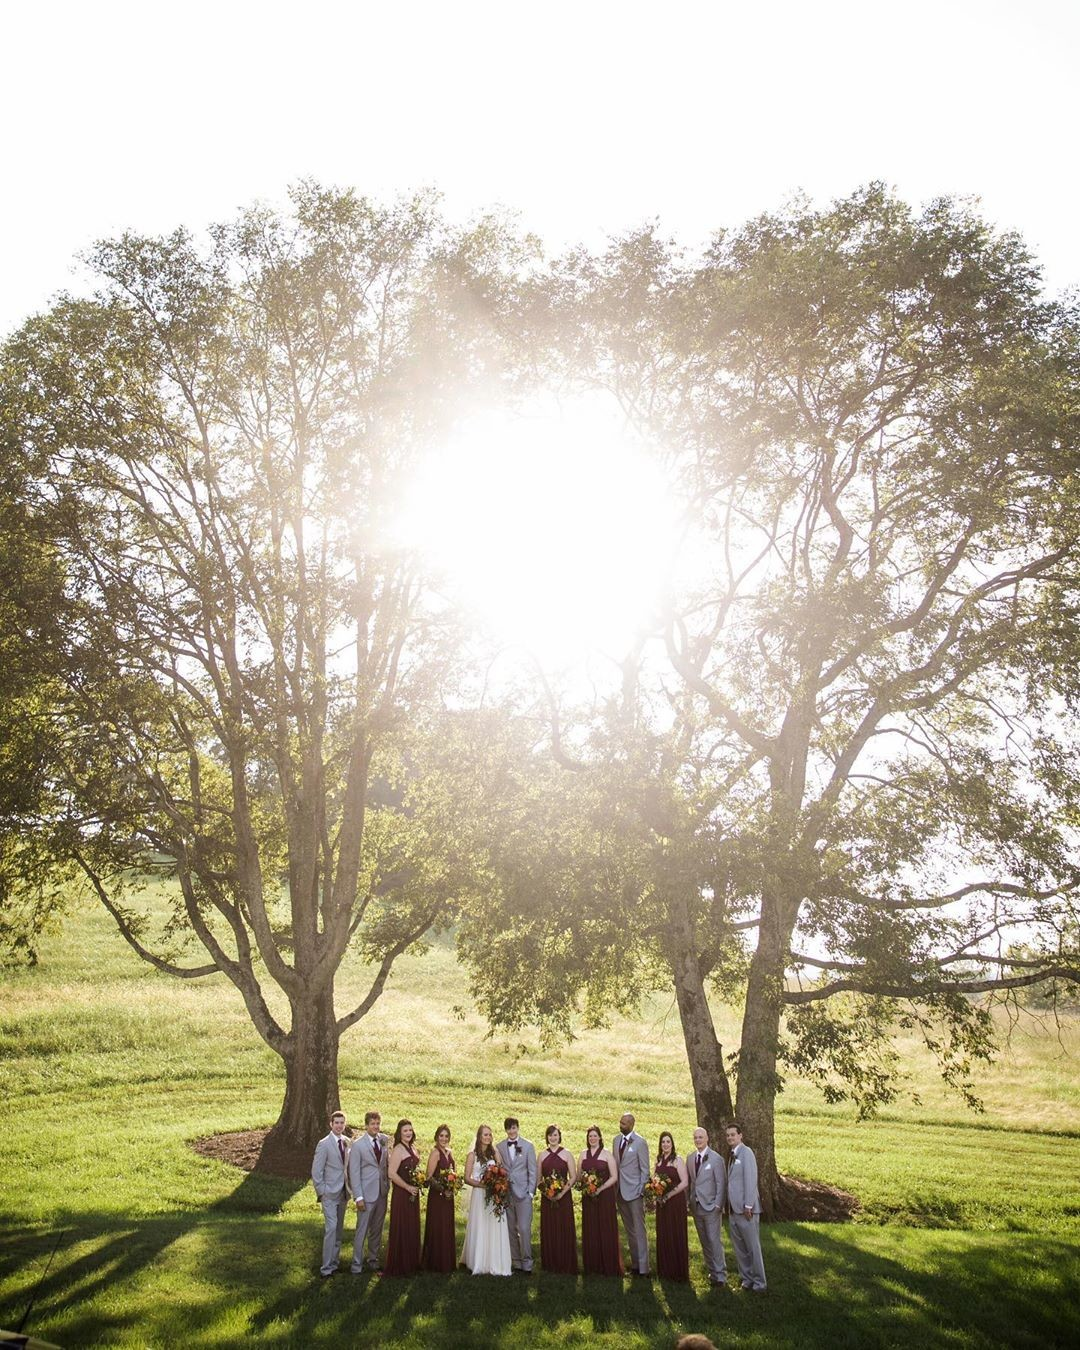 Yesterday we celebrated the perfect sky during the wedding ceremony...today we are showing the love for the perfect fall sunlight through